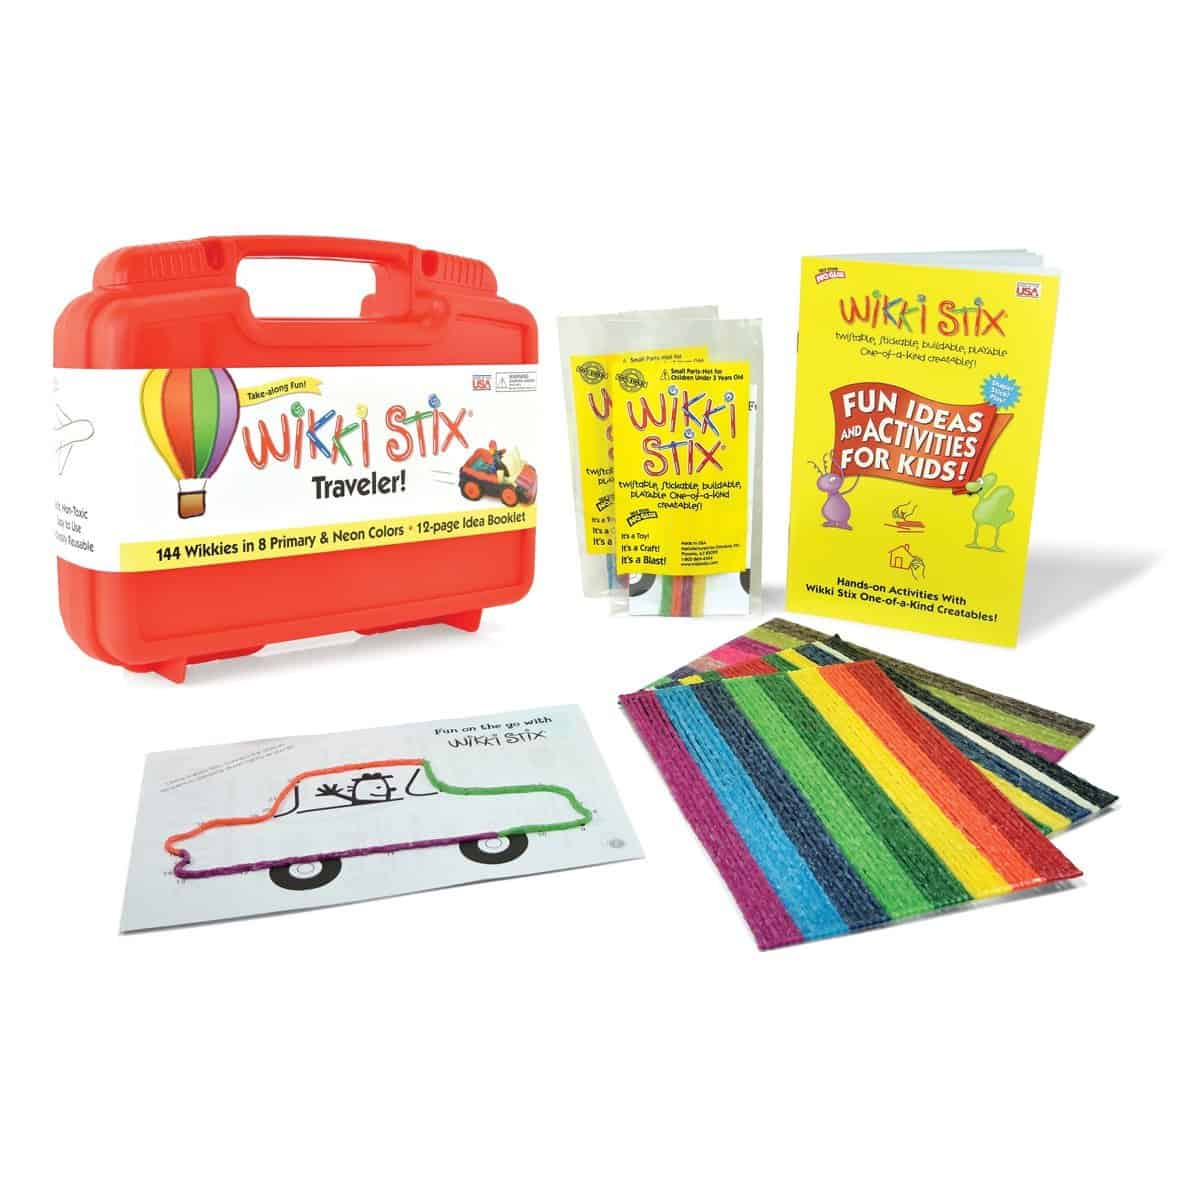 Wikki stix traveler is a fun, mess-free activity for kids that makes an awesome boredom buster on long car trips.